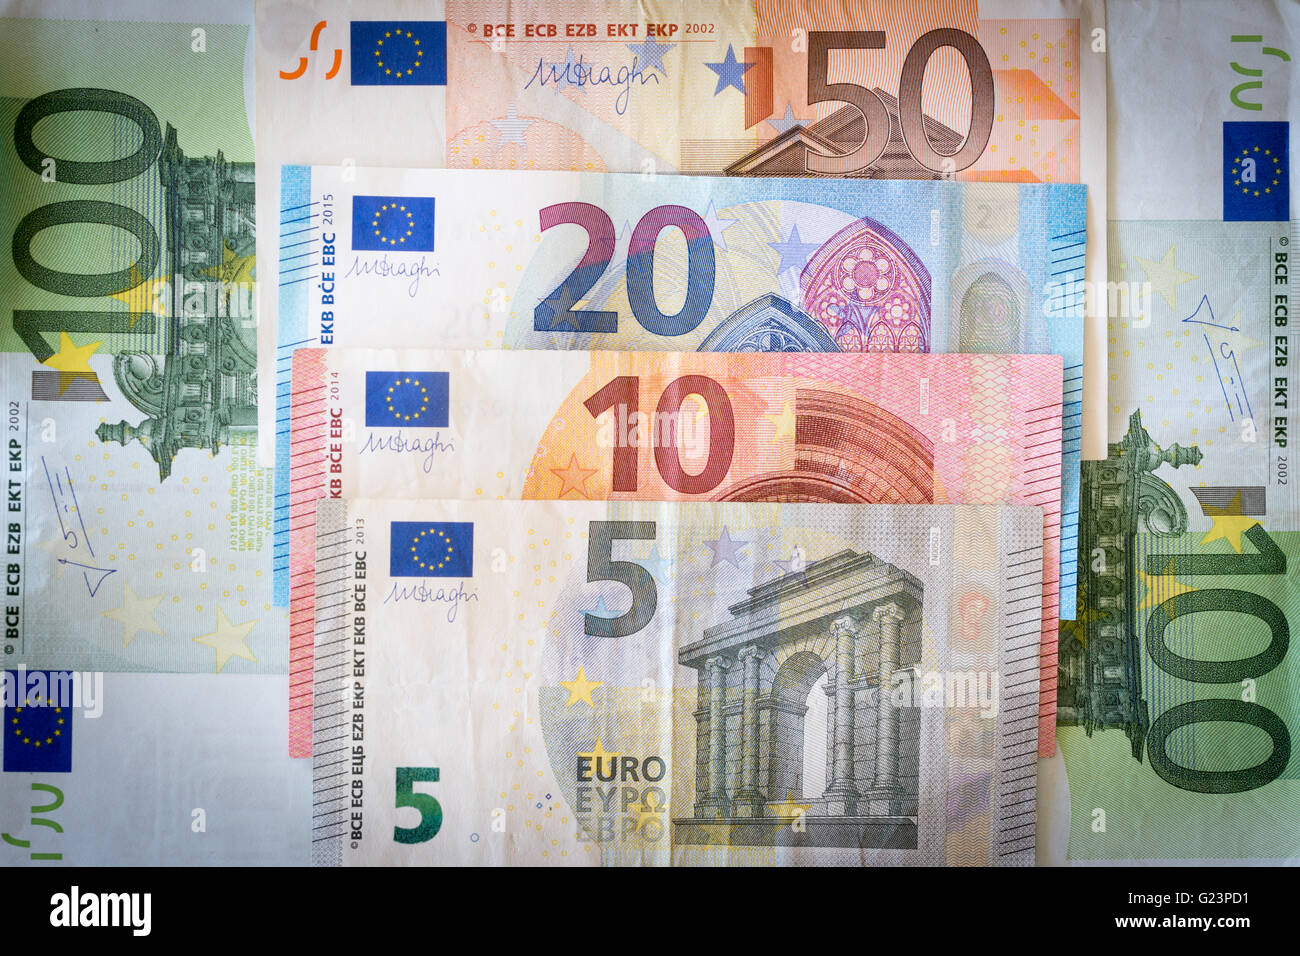 A selection of Euro banknotes - Stock Image